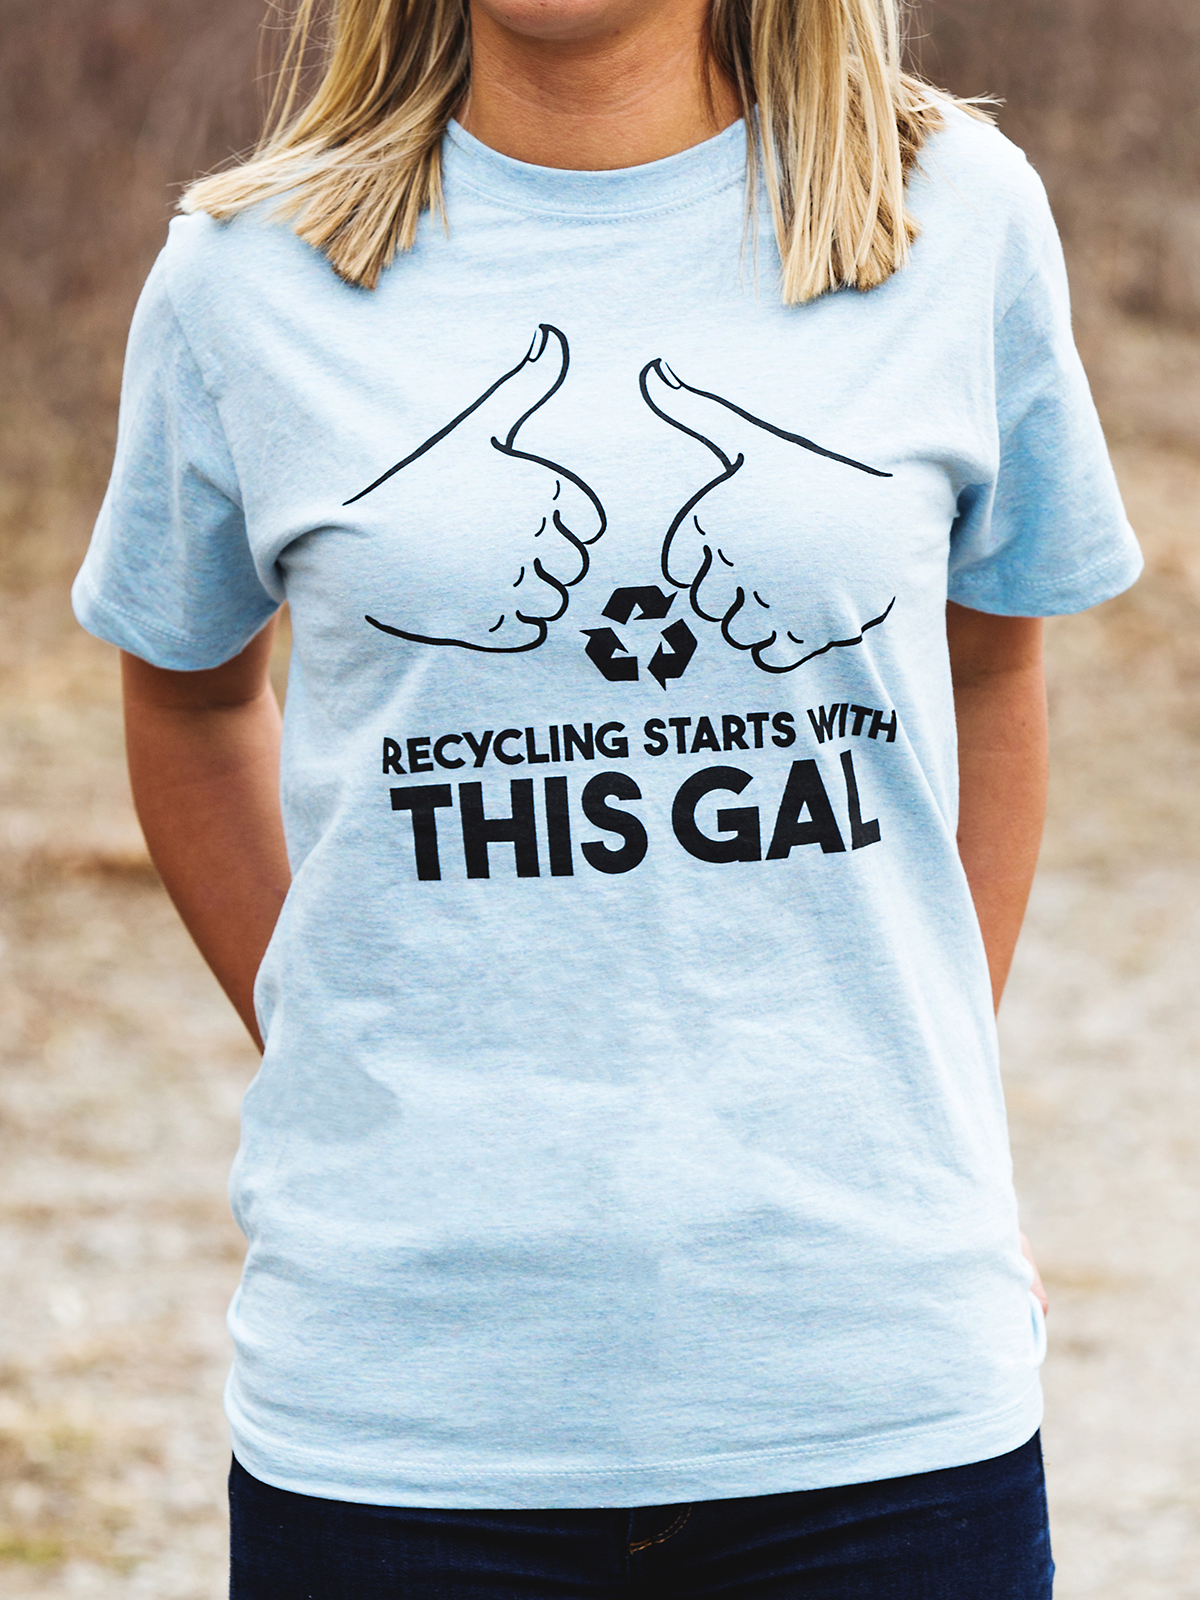 RECYCLING STARTS WITH THIS GAL T-SHIRT